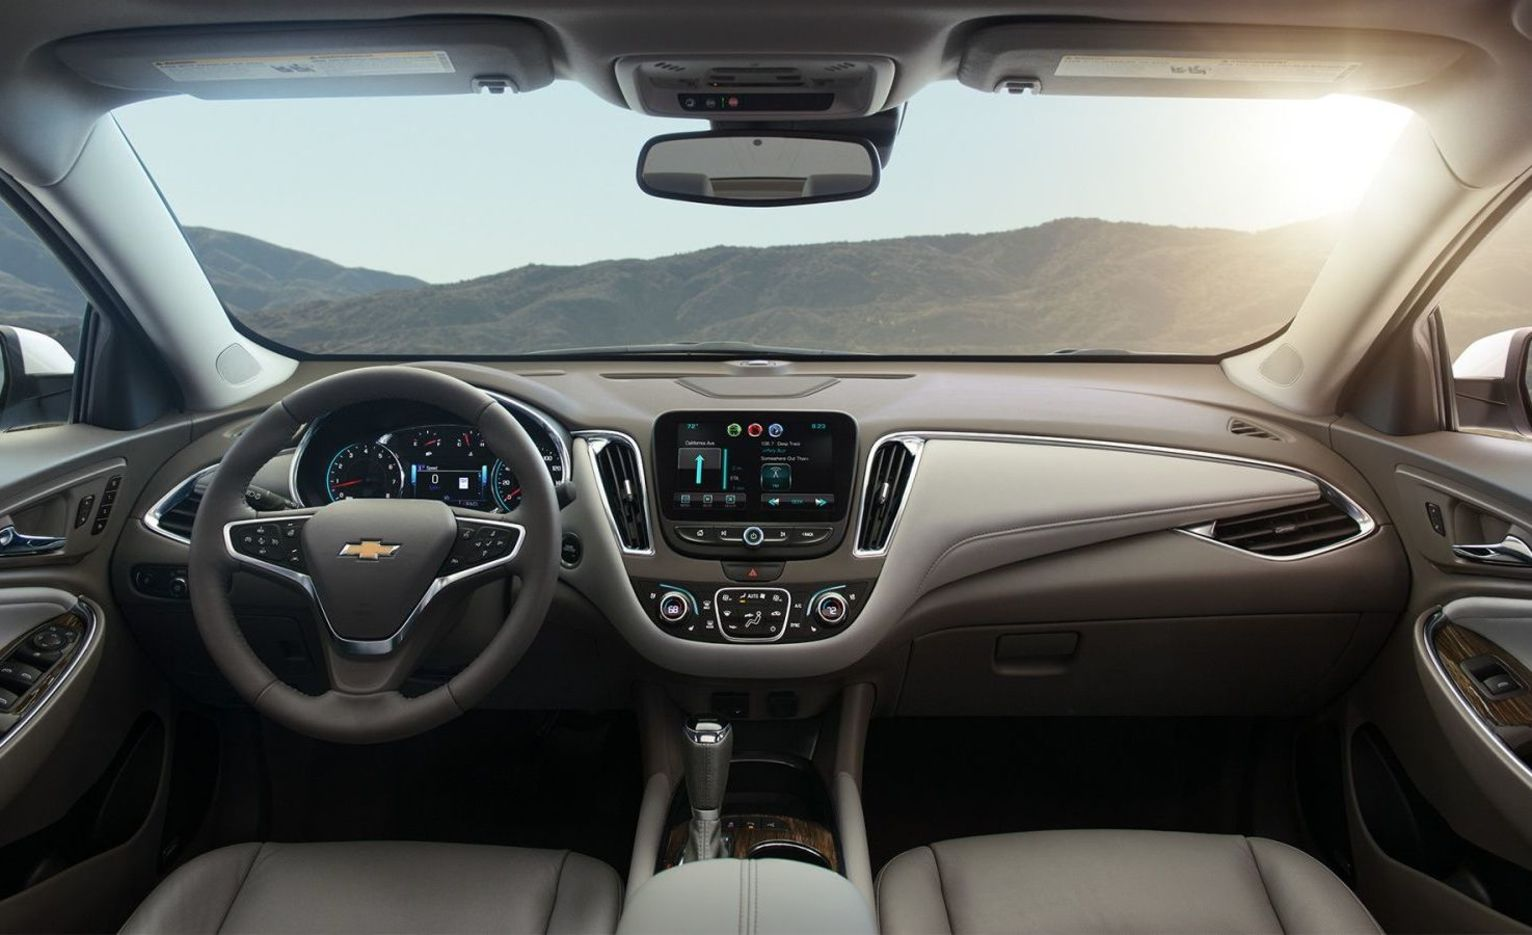 Chevy Malibu Interior